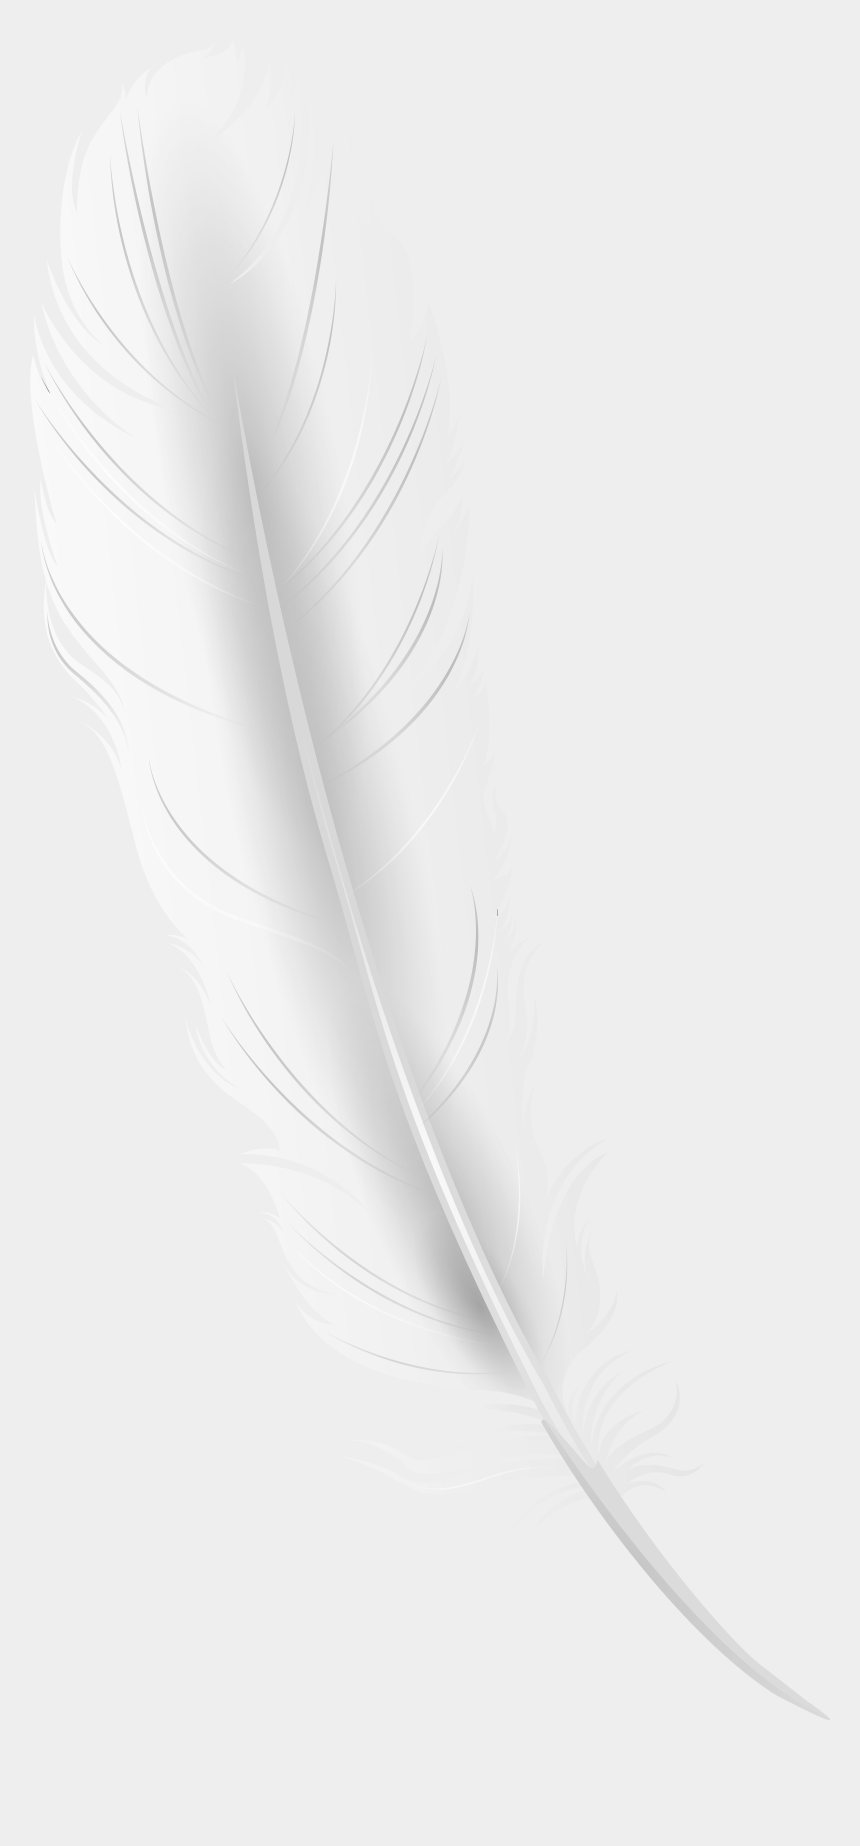 quill pen clipart, Cartoons - White Feather Png - White Feather Png Transparent